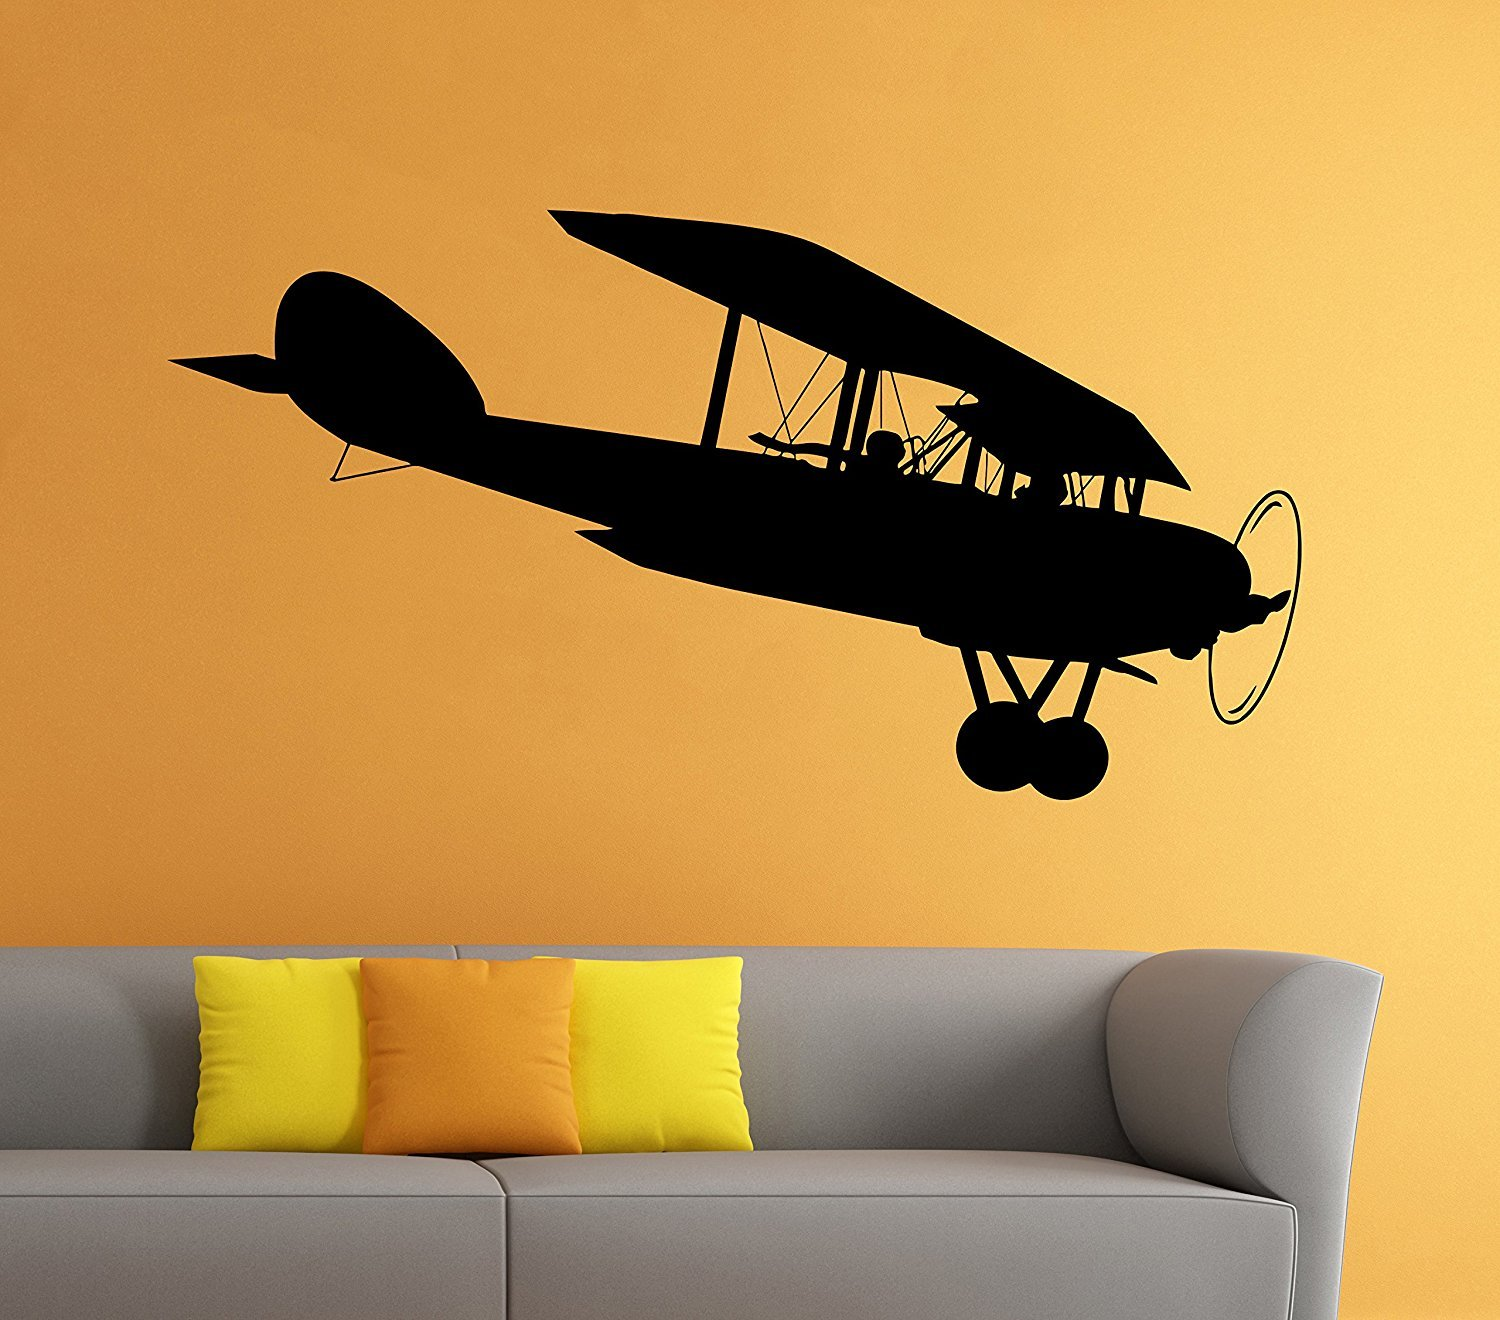 Amazon.com: Airplane Plane Wall Vinyl Decal Aviation Sticker Art ...